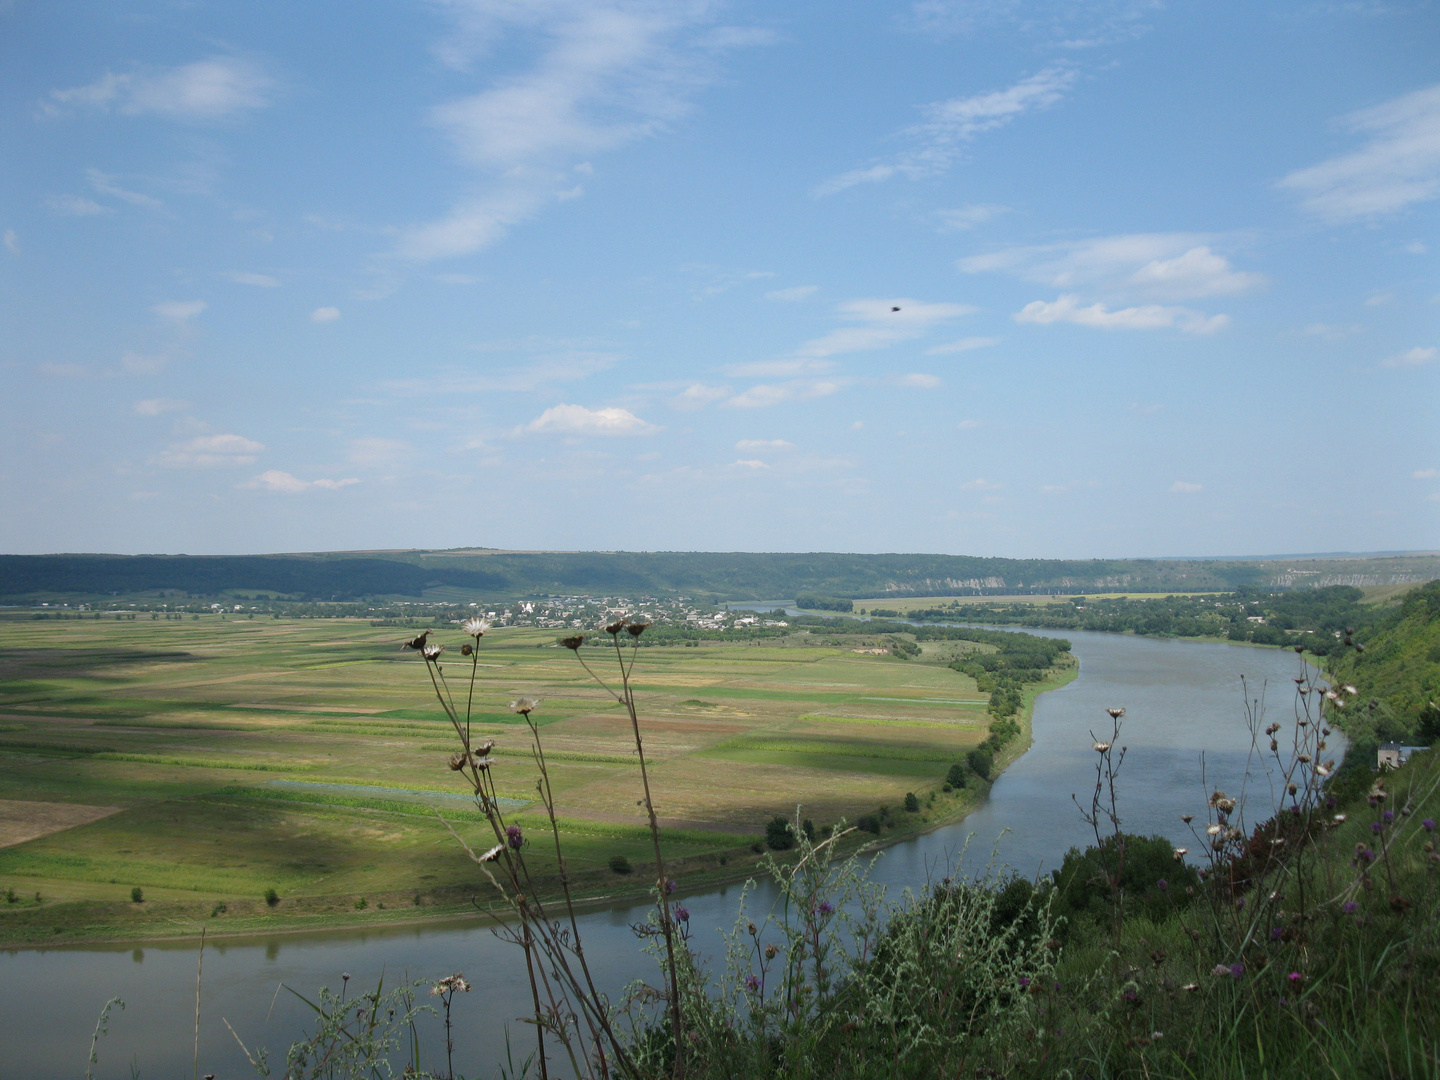 The Dniester (downstream)